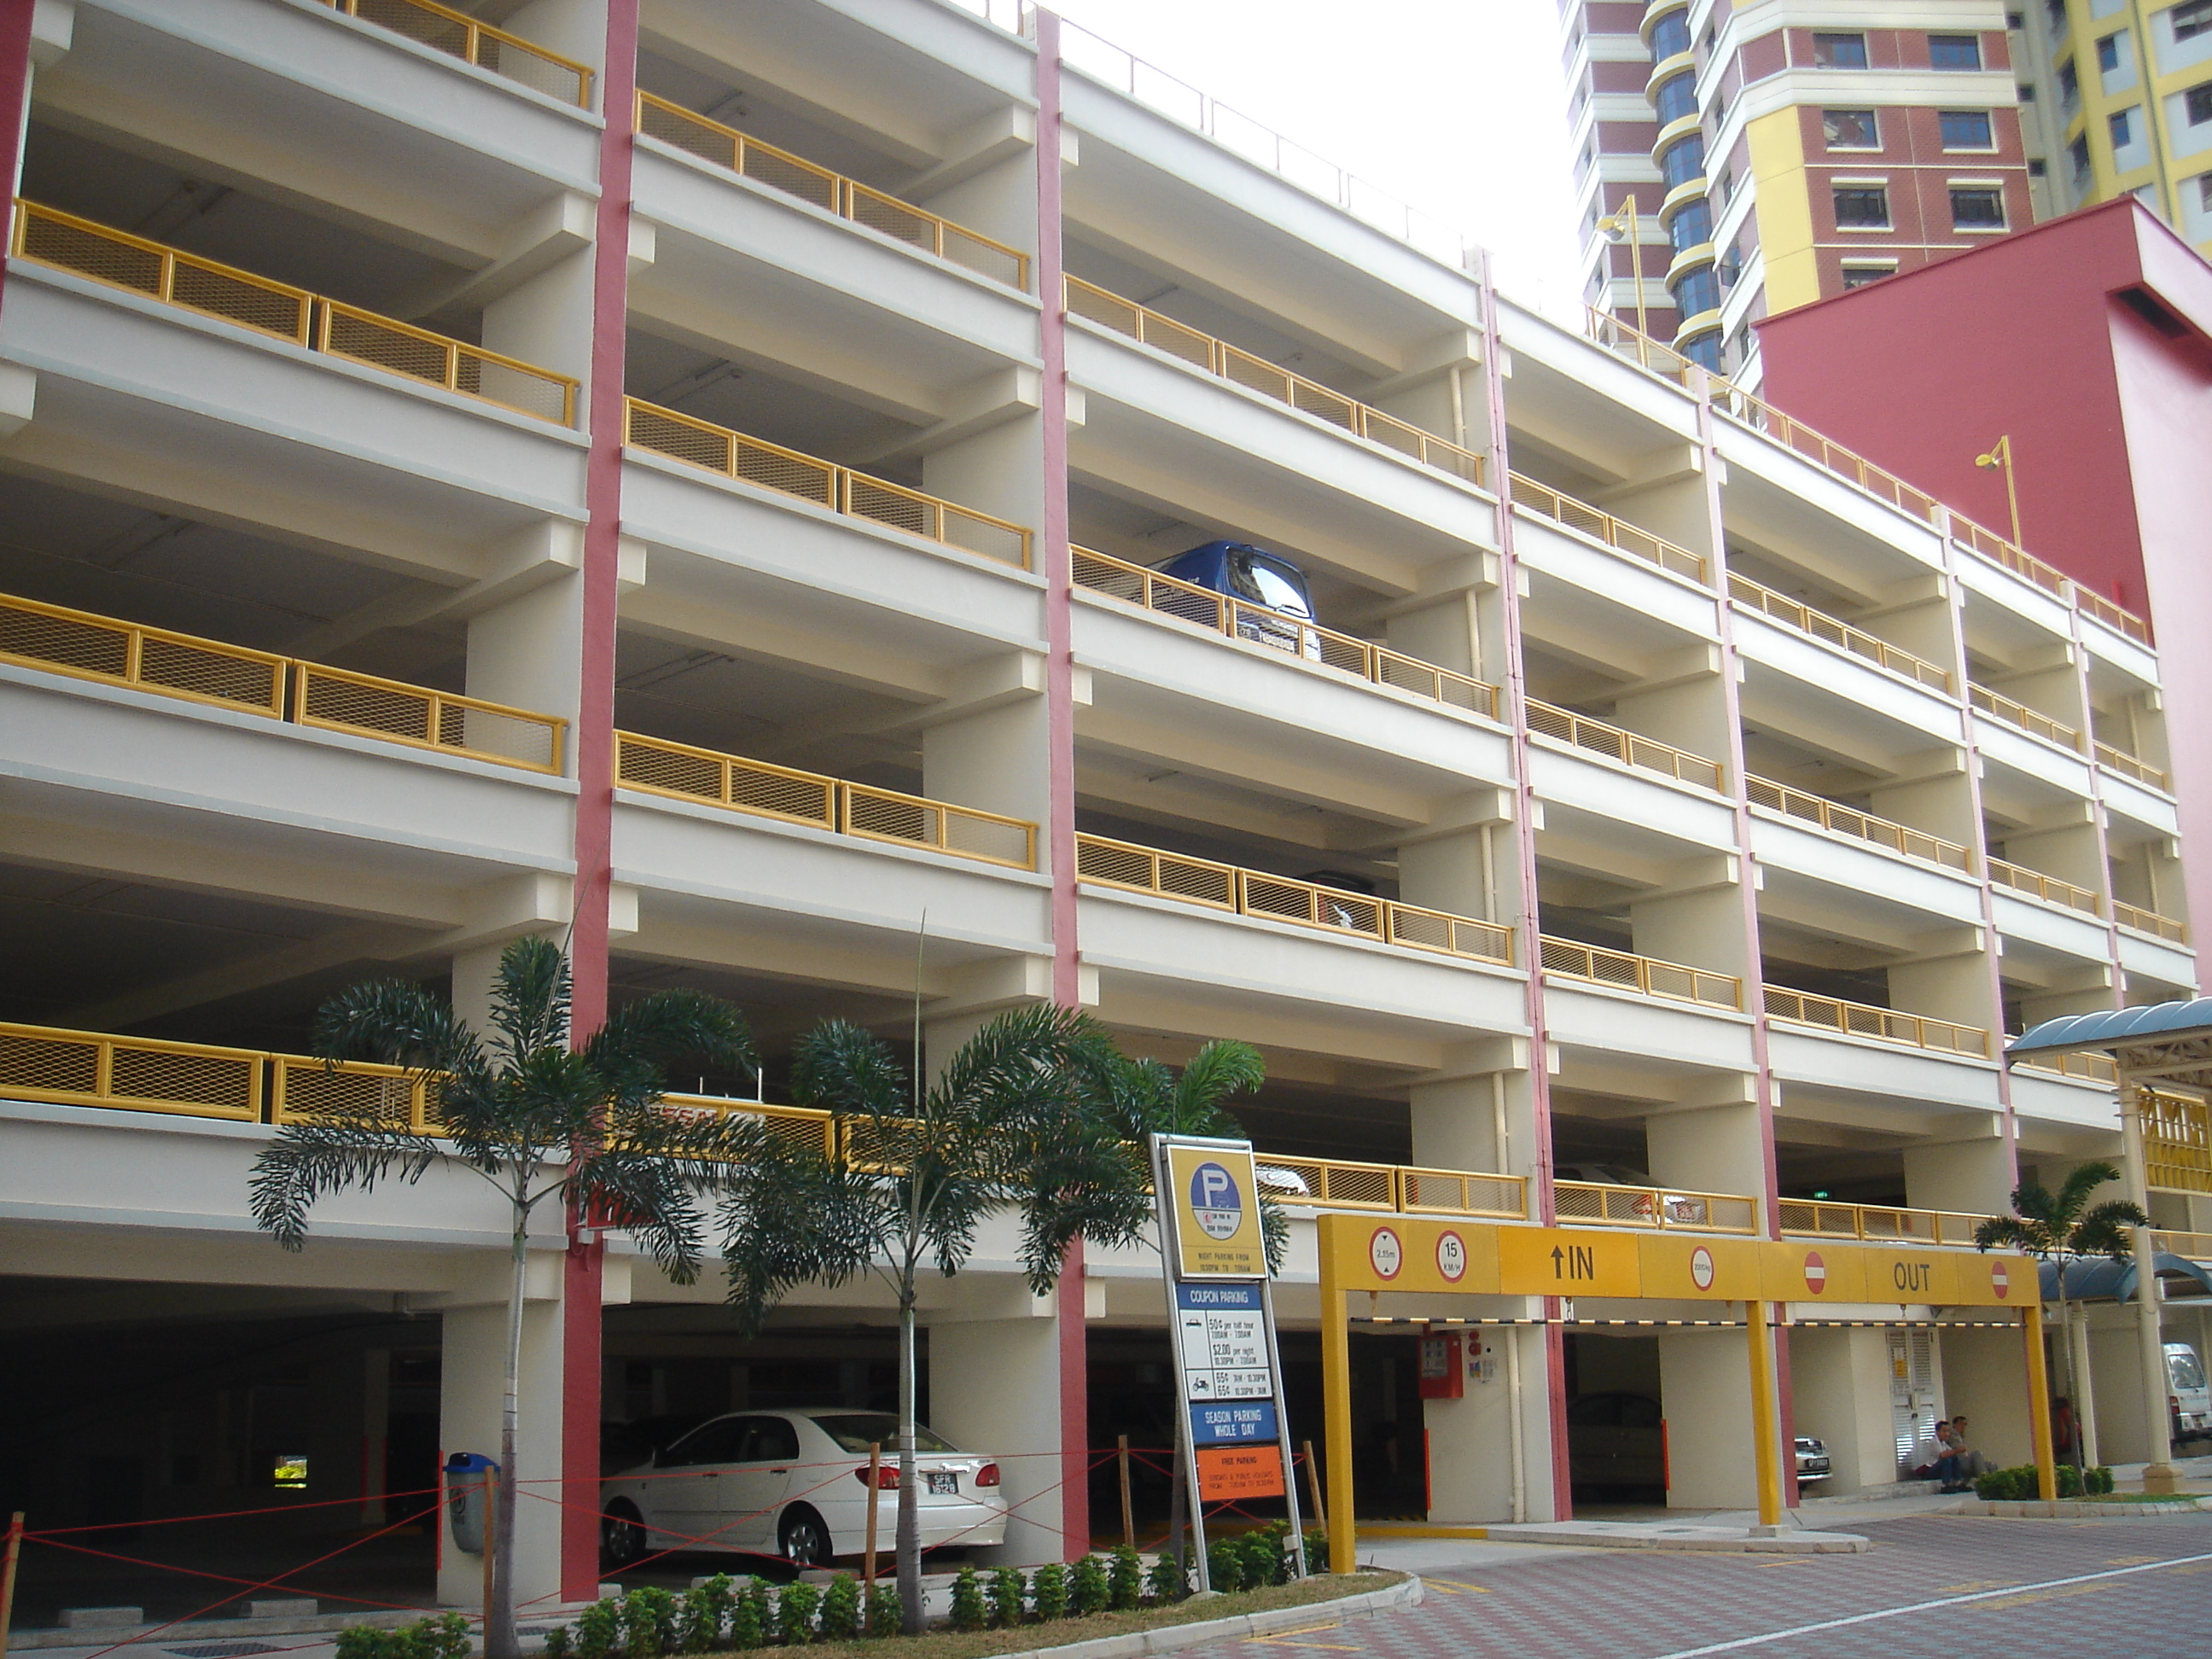 Tailgating detection system will be installed in car parks of Singapore from next year.